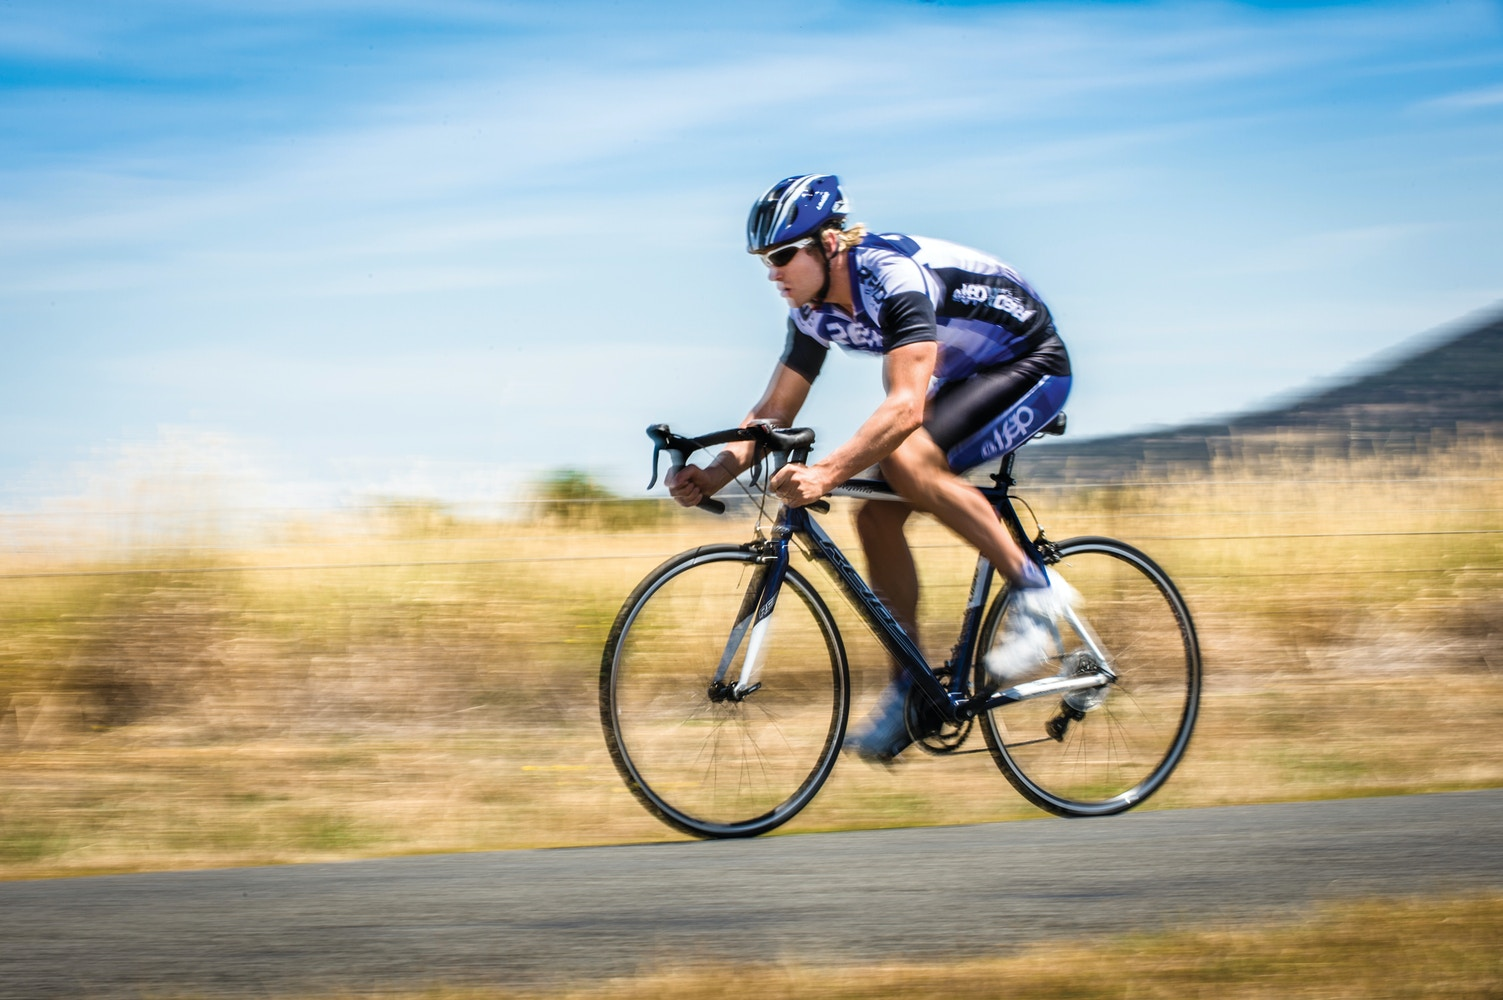 Reid Aquila STI Road Bike Review